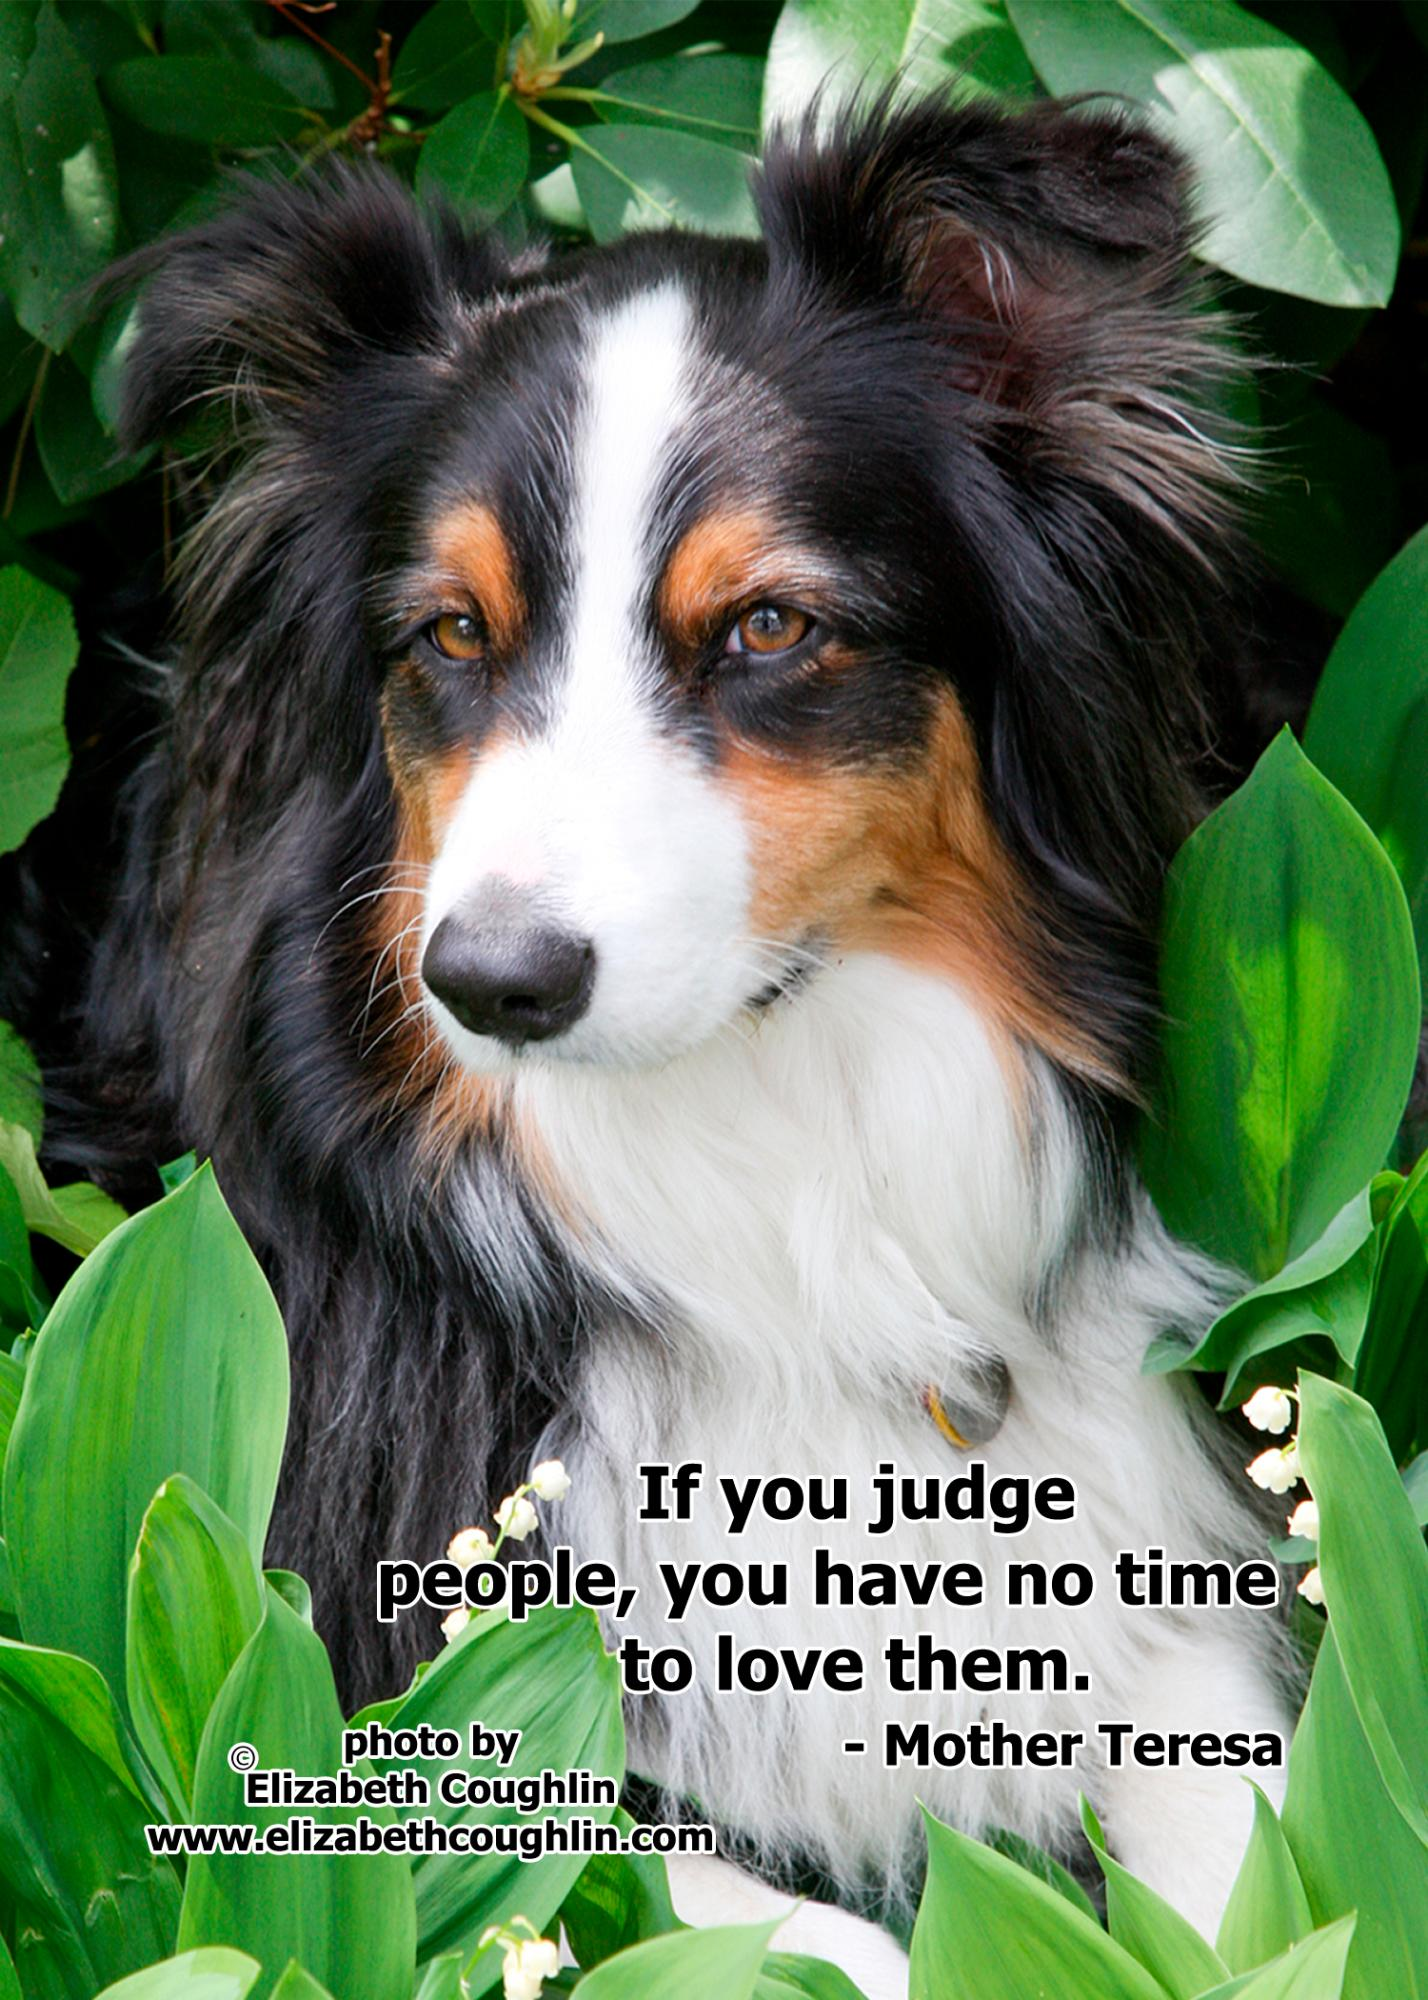 DOG_ifyoujudge.jpg